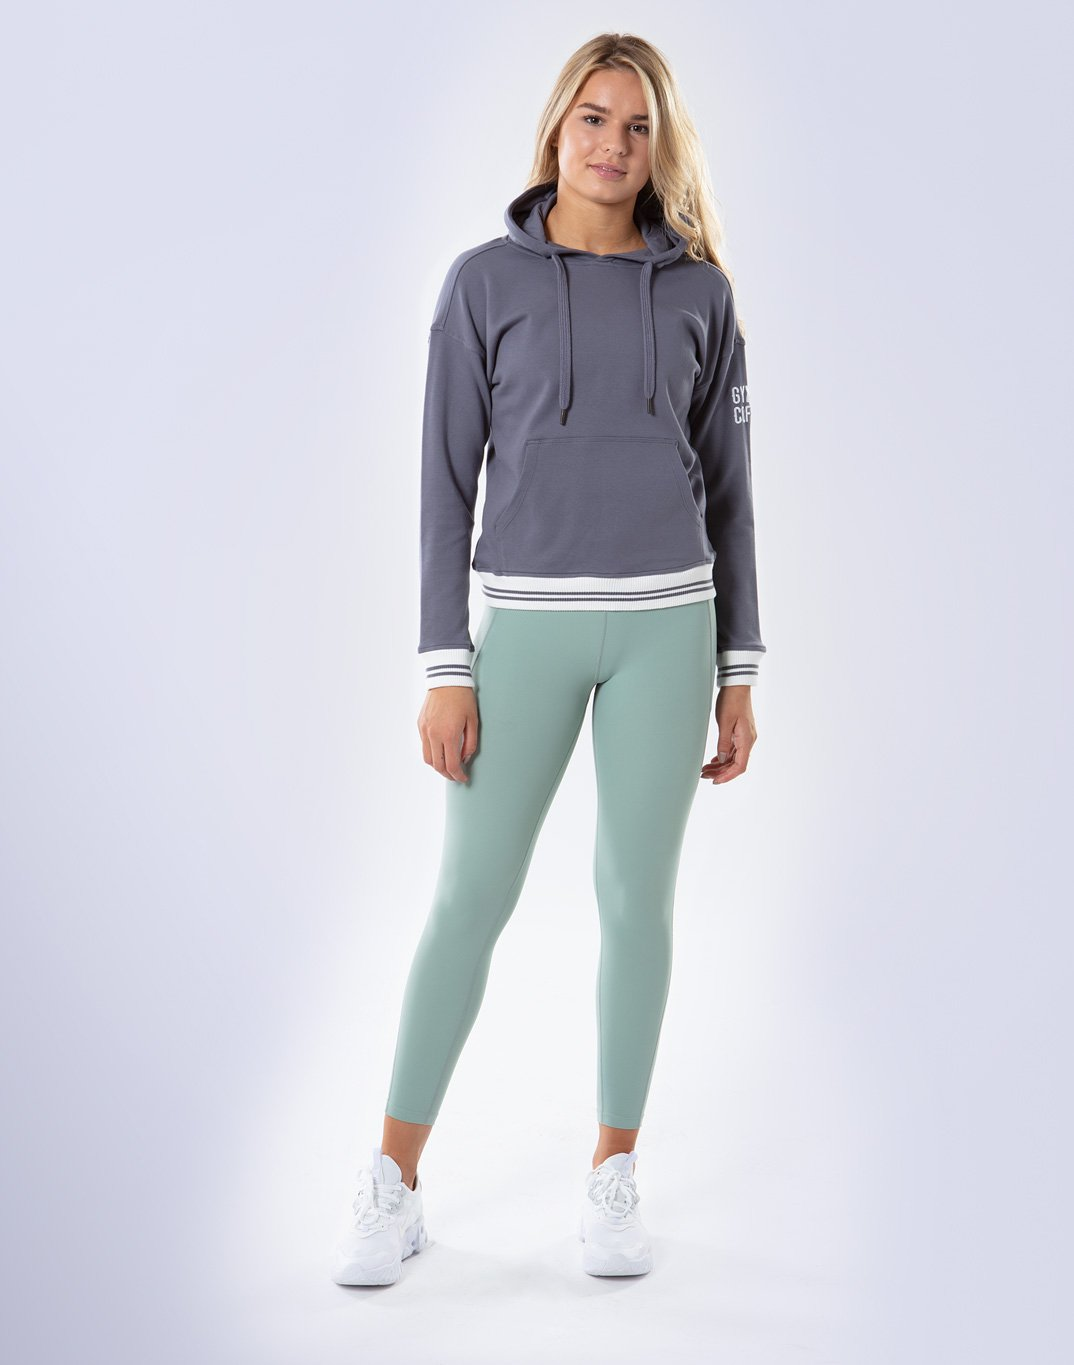 Gym Plus Coffee Hoodie Women's Retro Pullover Hoodie in Stone Blue Designed in Ireland